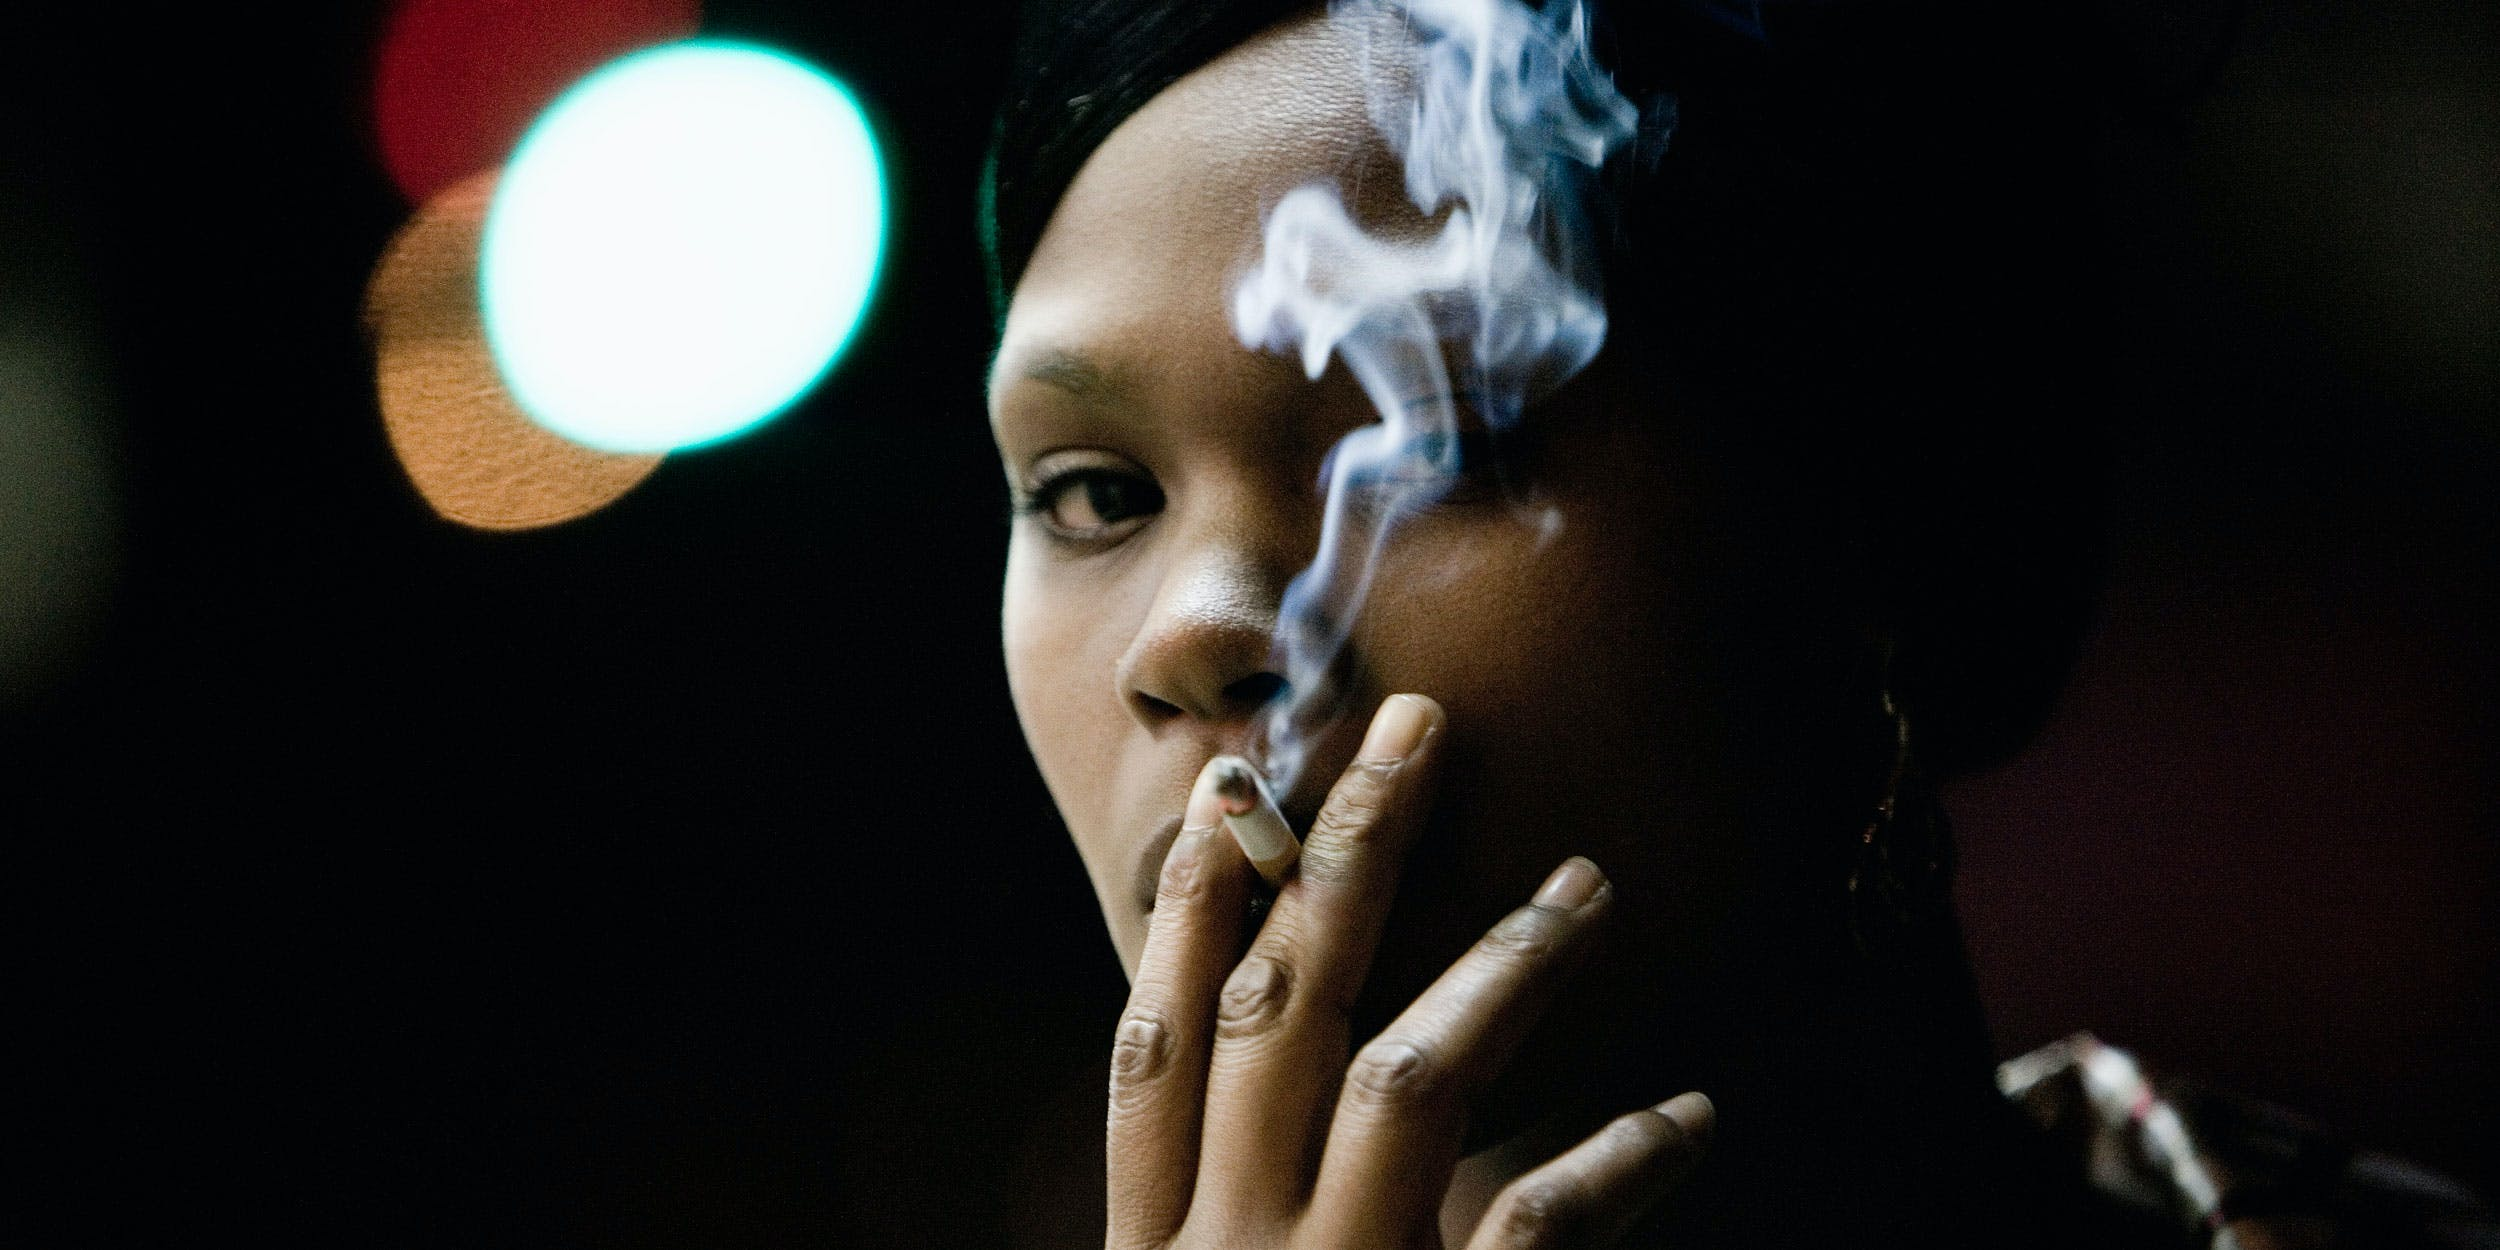 Woman smoking a cigarette. Imperial Brands is investing in the cannabis industry